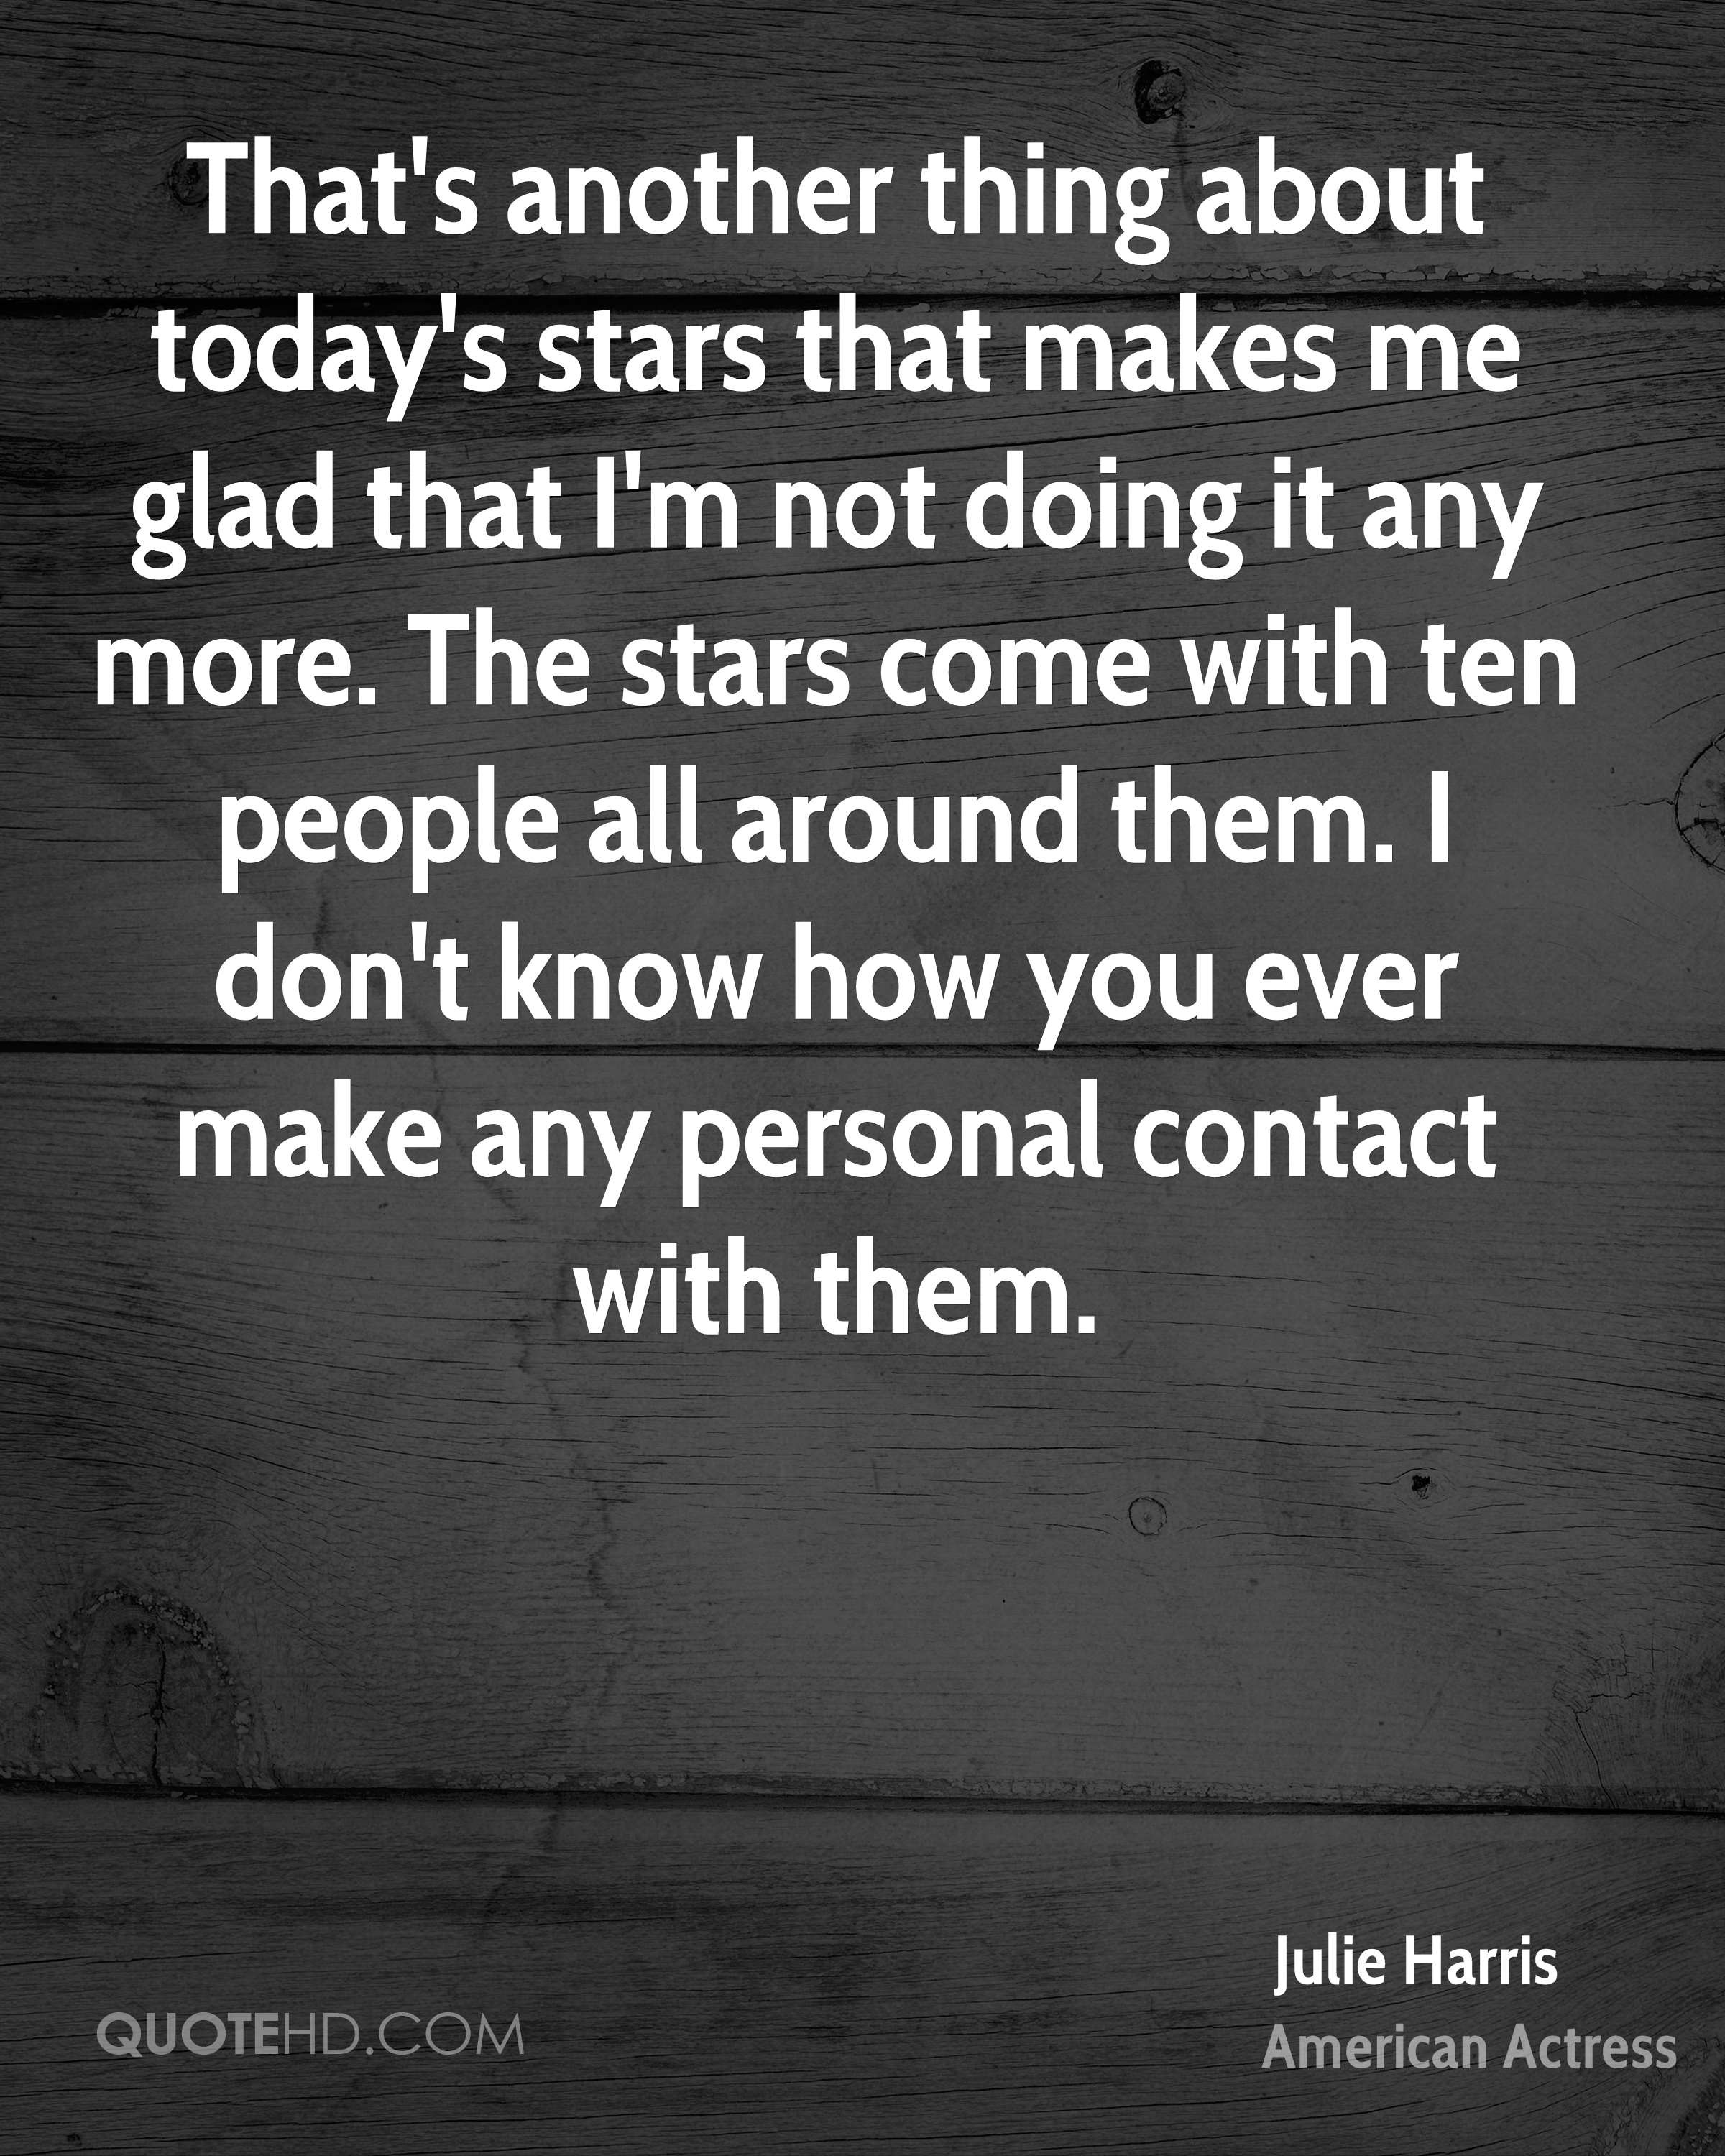 That's another thing about today's stars that makes me glad that I'm not doing it any more. The stars come with ten people all around them. I don't know how you ever make any personal contact with them.